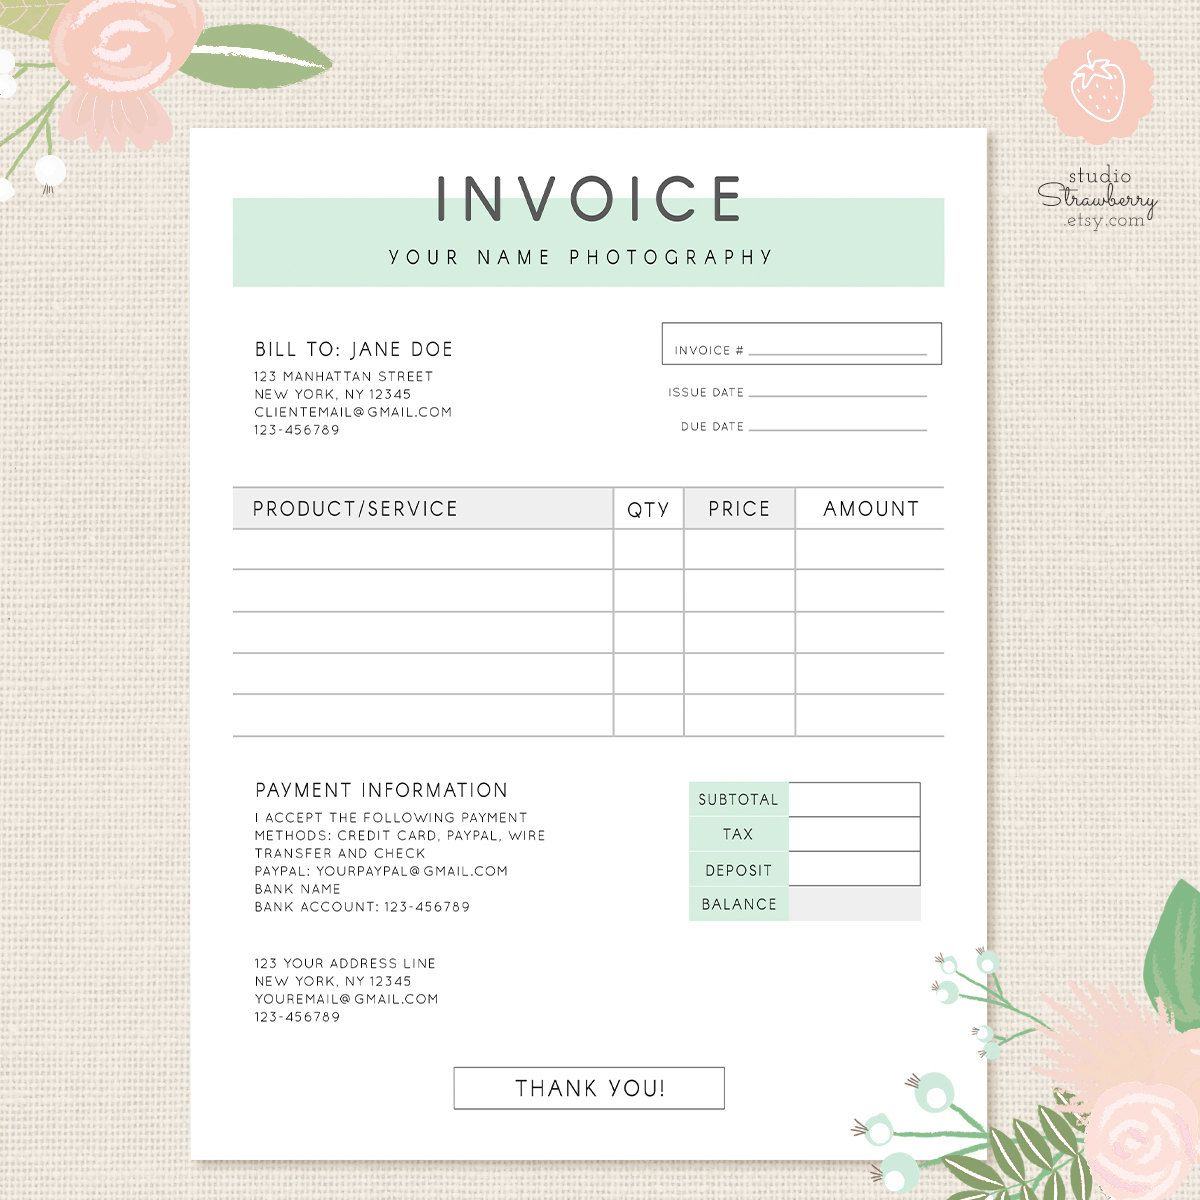 Invoice template, Photography invoice, Business invoice, Receipt